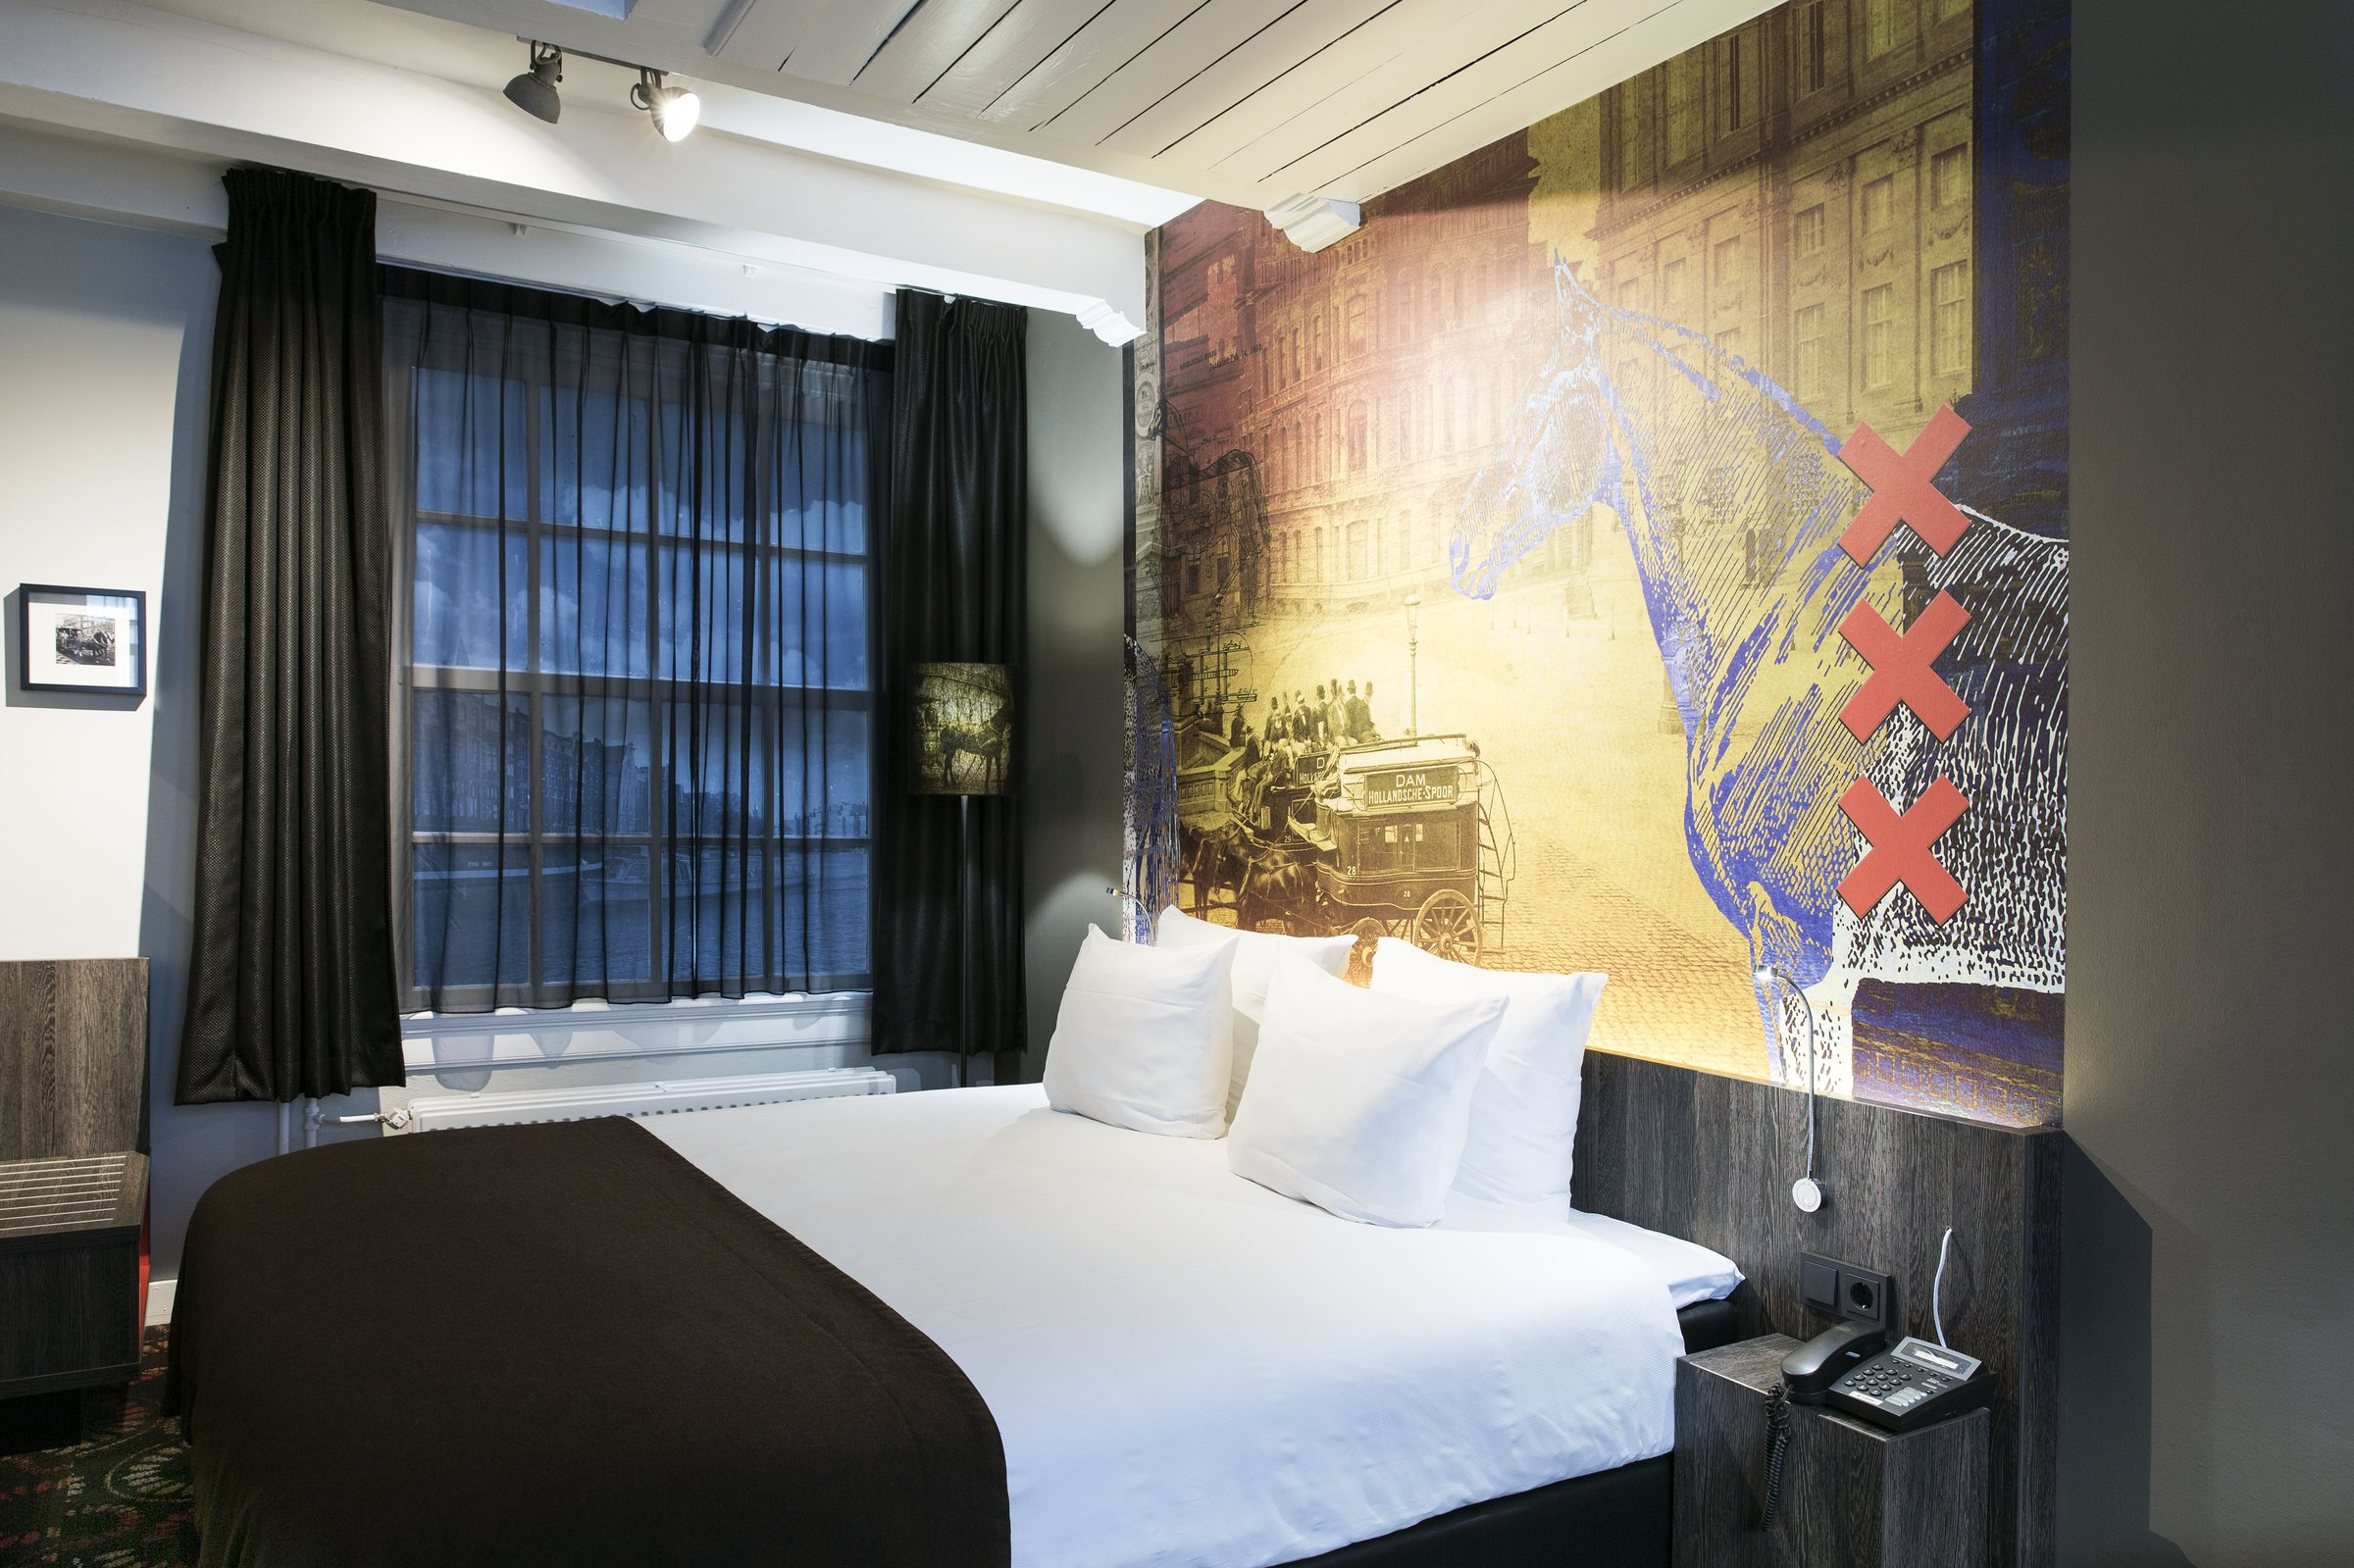 The 218 Modern Hotel Rooms Of The Eden Hotel Amsterdam Are Designed To  Ensure A Pleasant Stay.